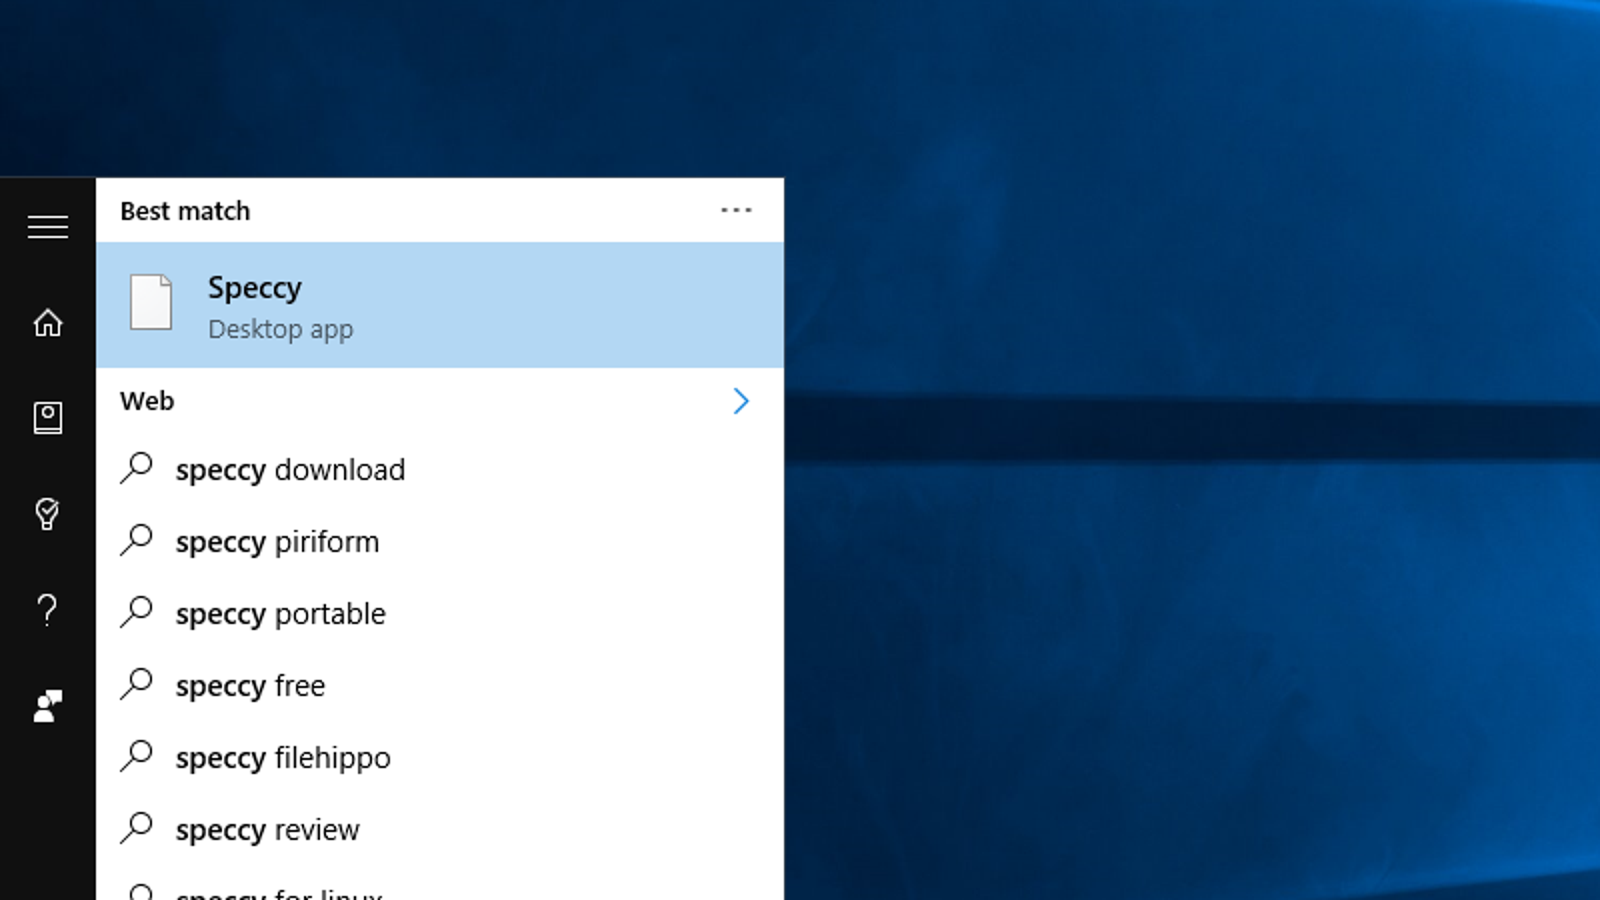 Windows 10 Updates Are Deleting Some Apps Without Notifying Users